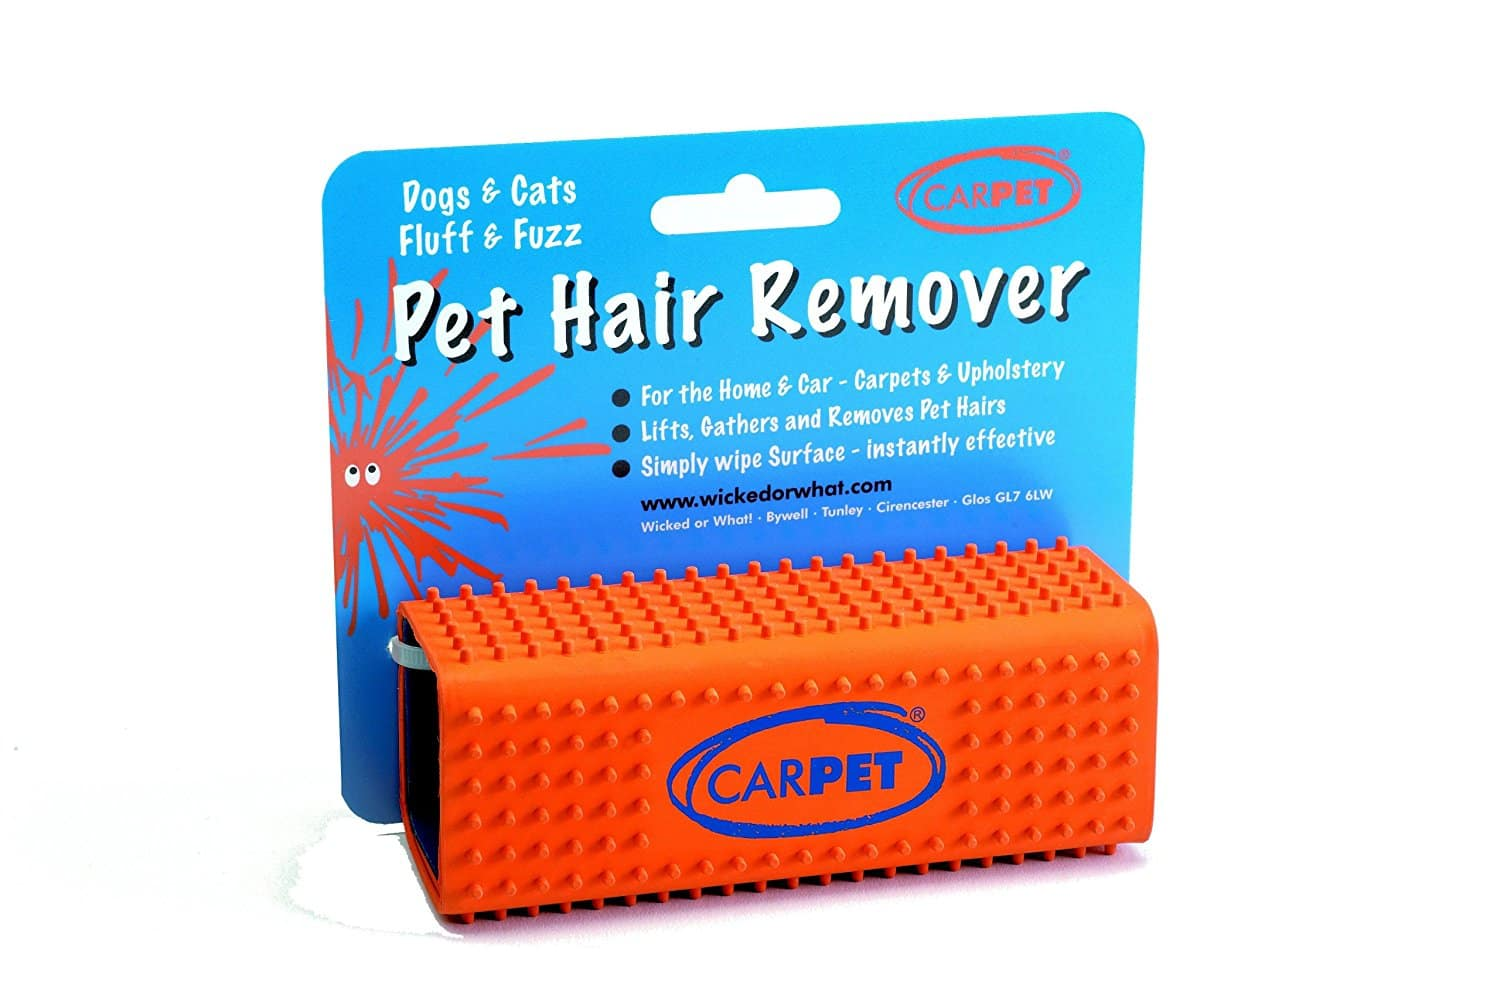 CarPET Pet Dog Hair Remover - $6.00 FS and up to 50% off on other dog toys and products